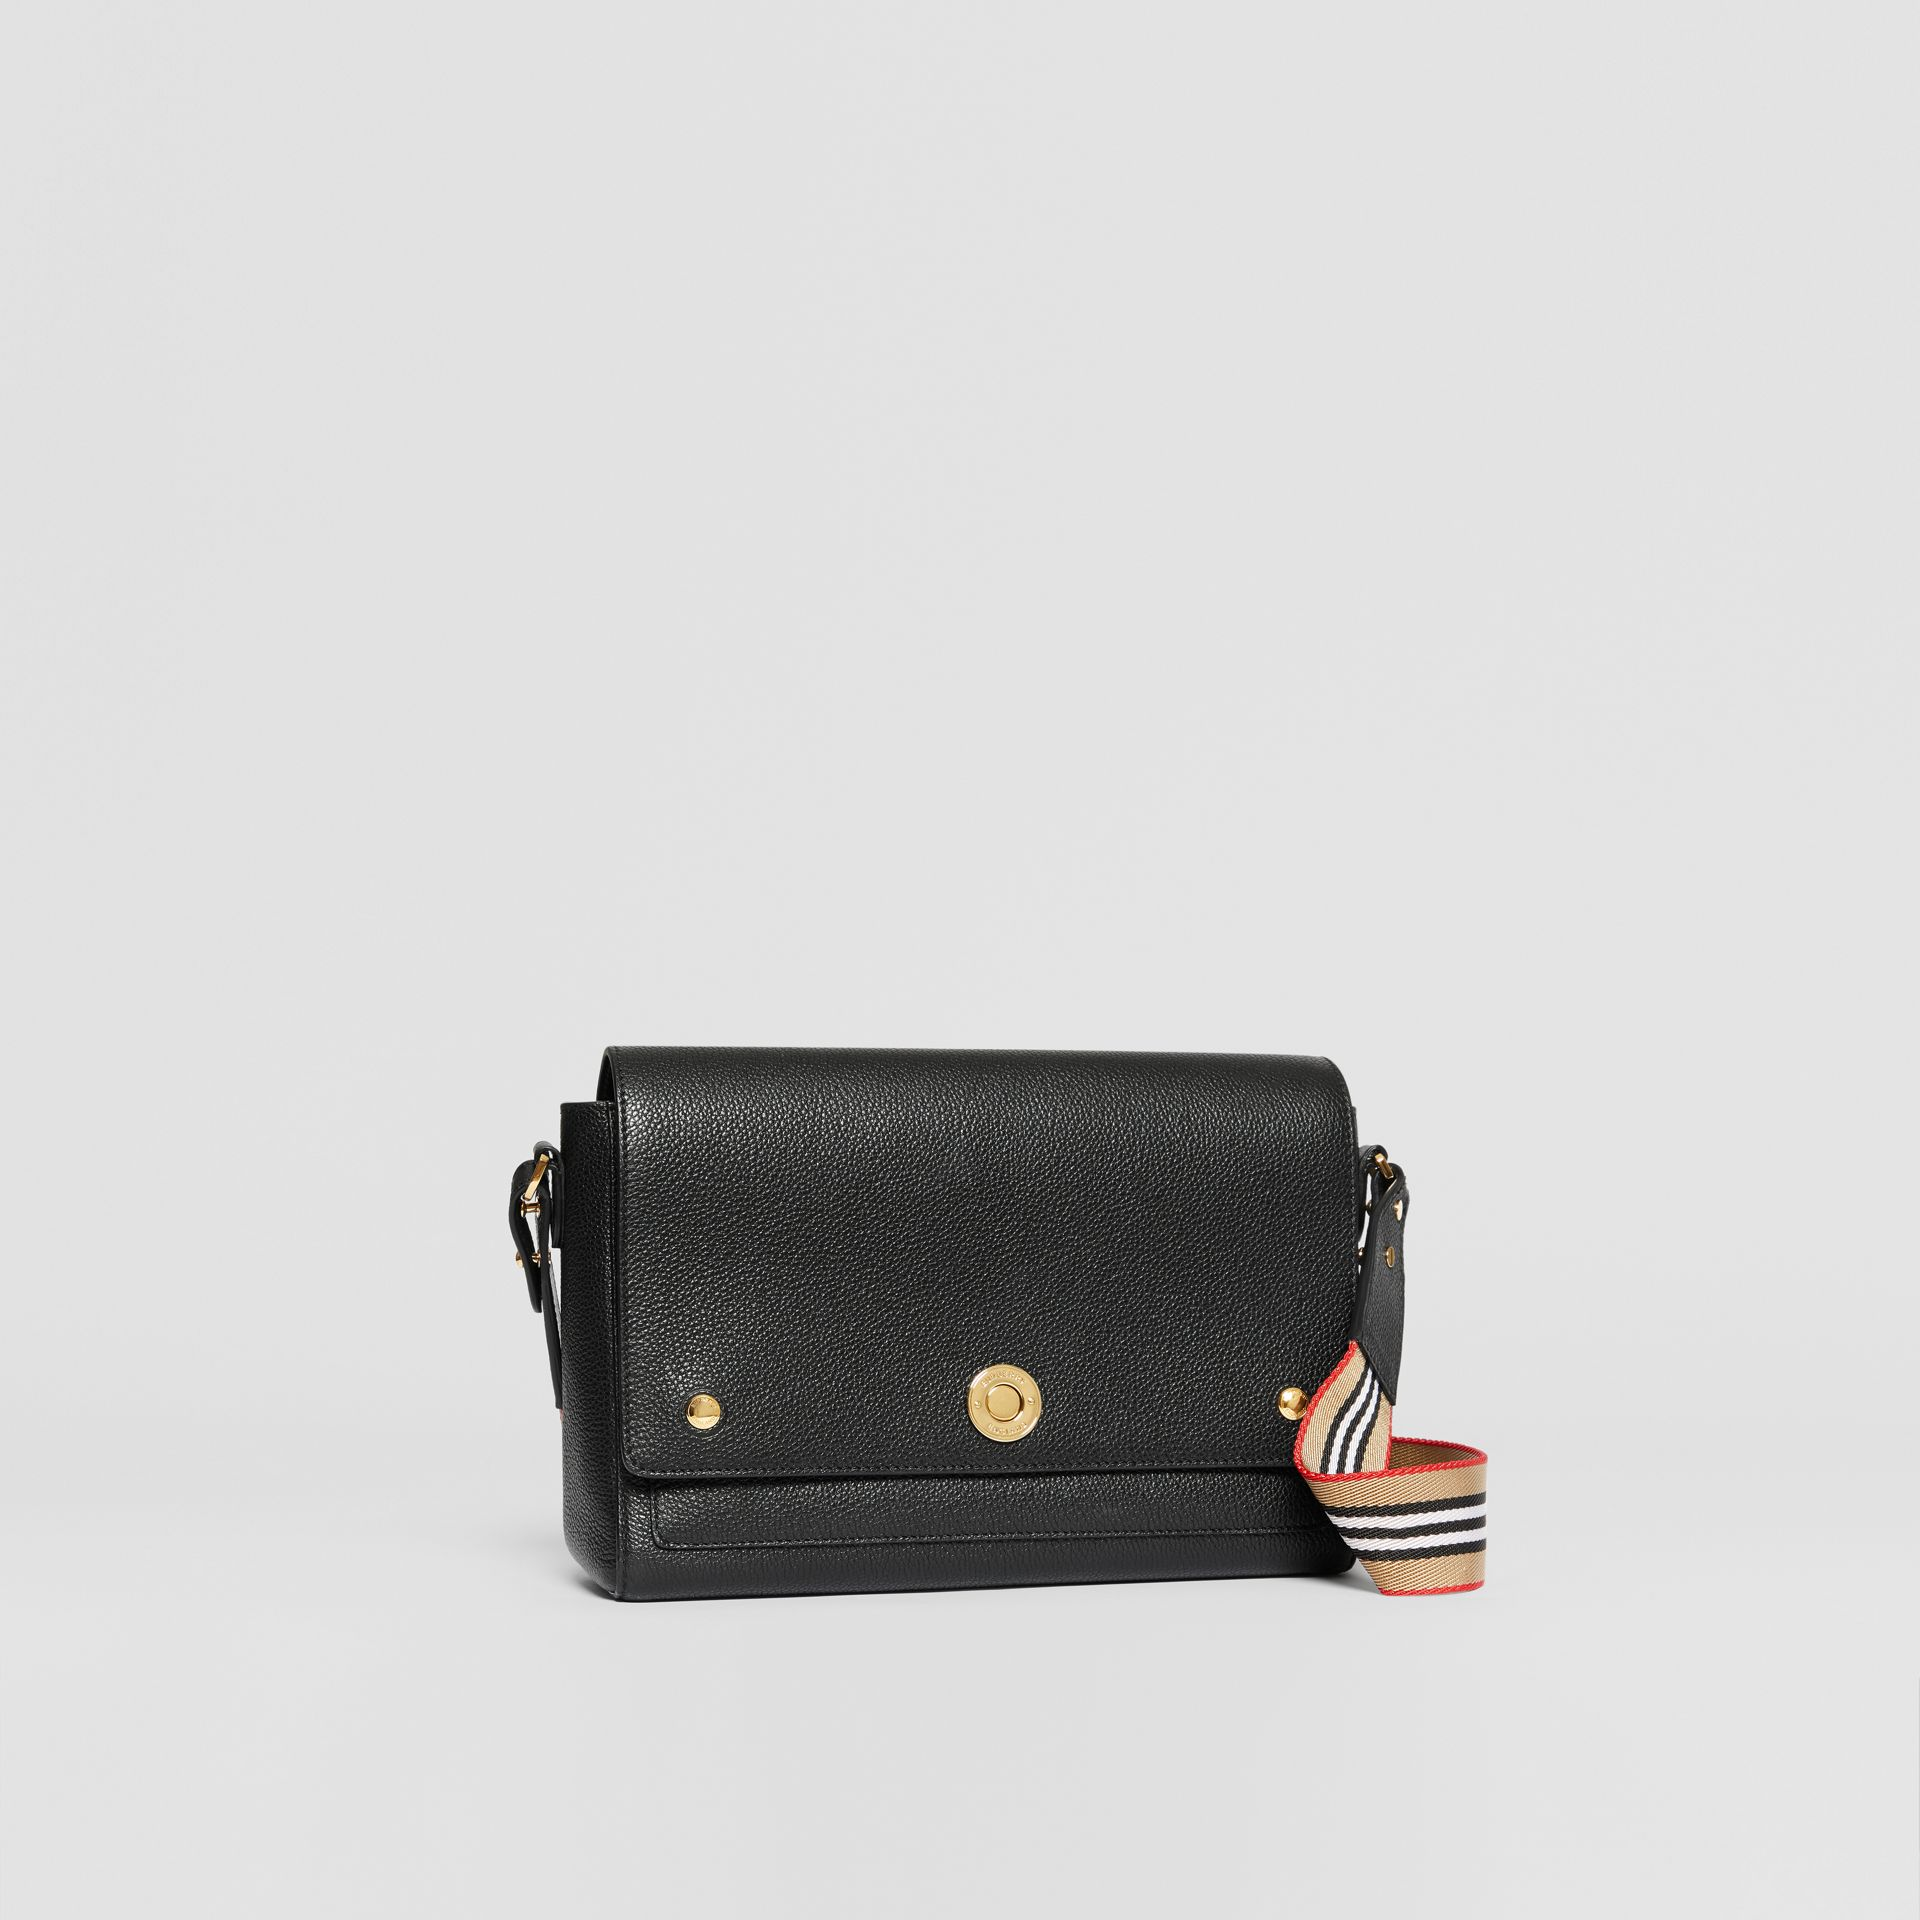 Grainy Leather Note Crossbody Bag in Black - Women | Burberry - gallery image 5